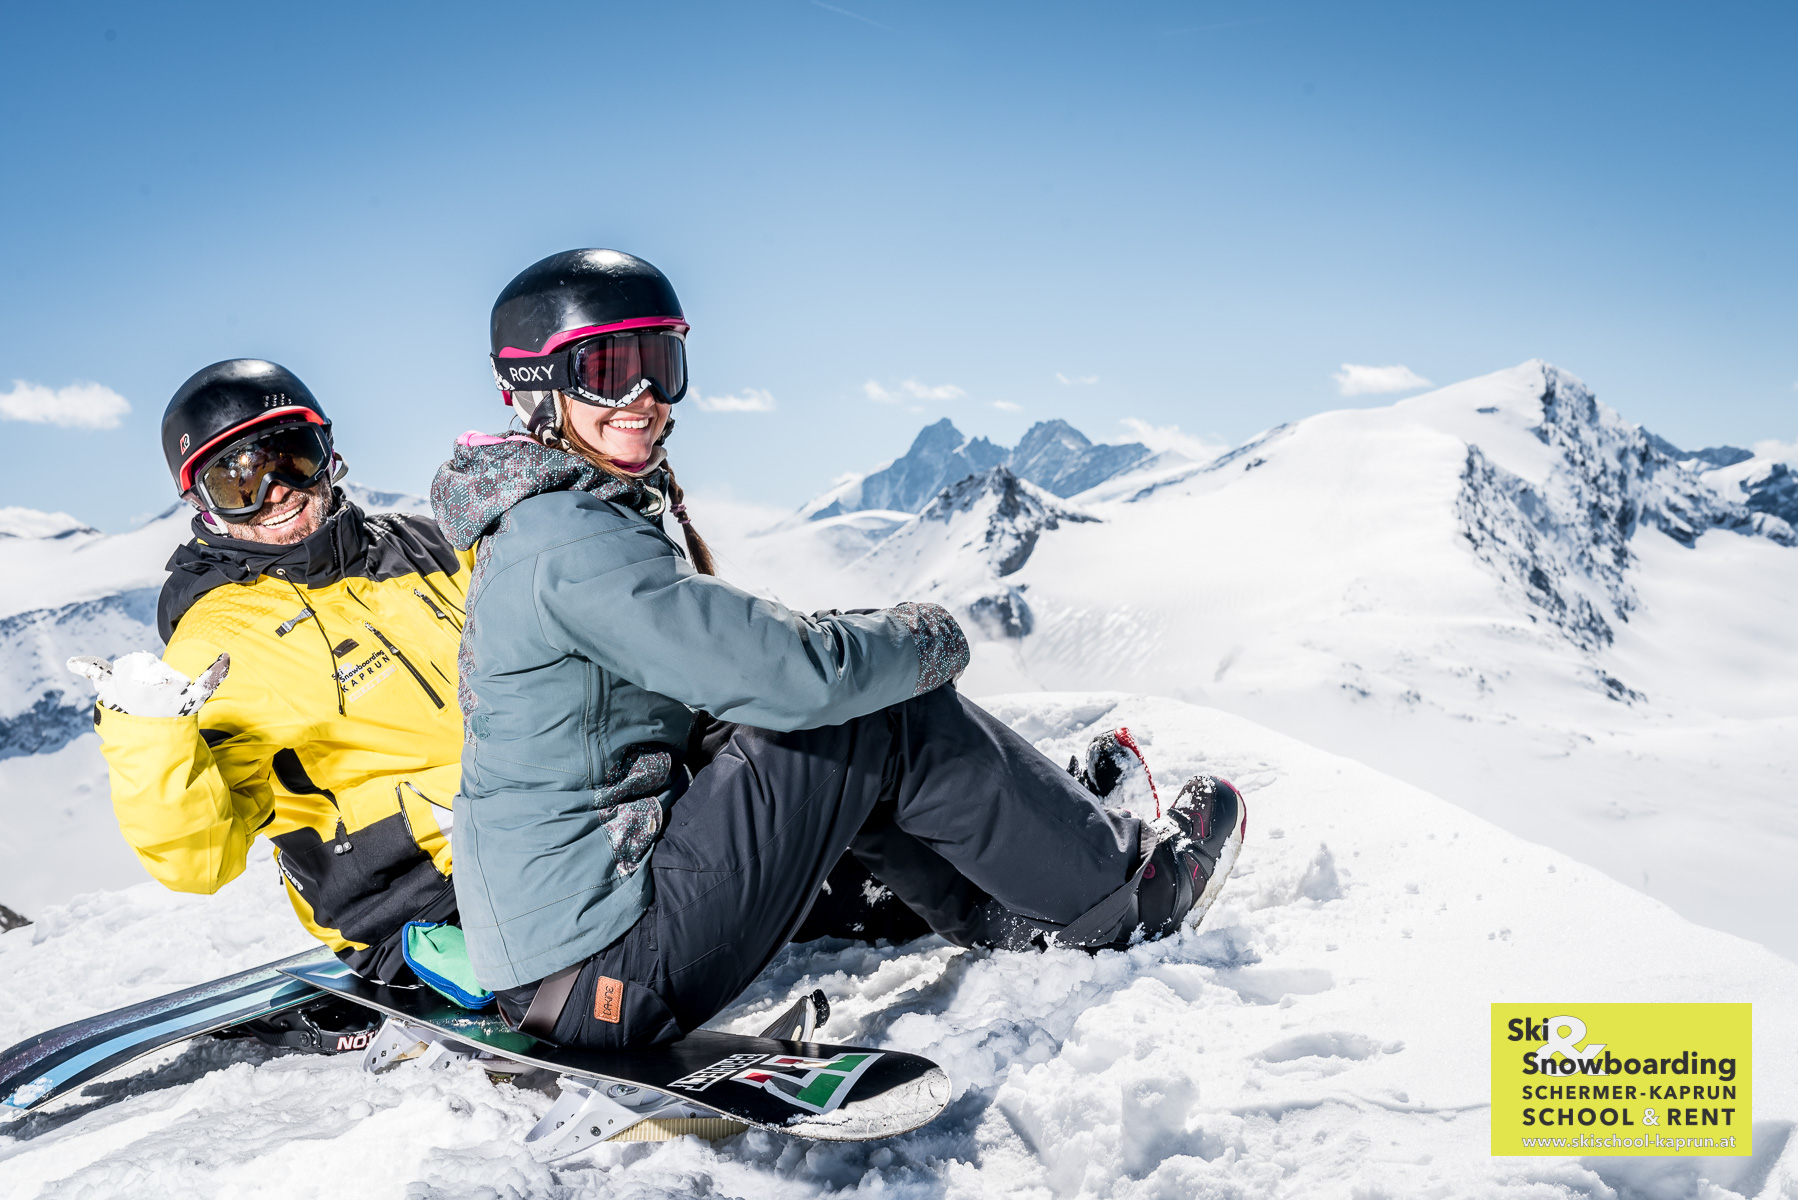 All in One Snowboard - Erwachsen/Adult, 3 Tage/Days Kurs/Course & 7 Tage/Days Rent